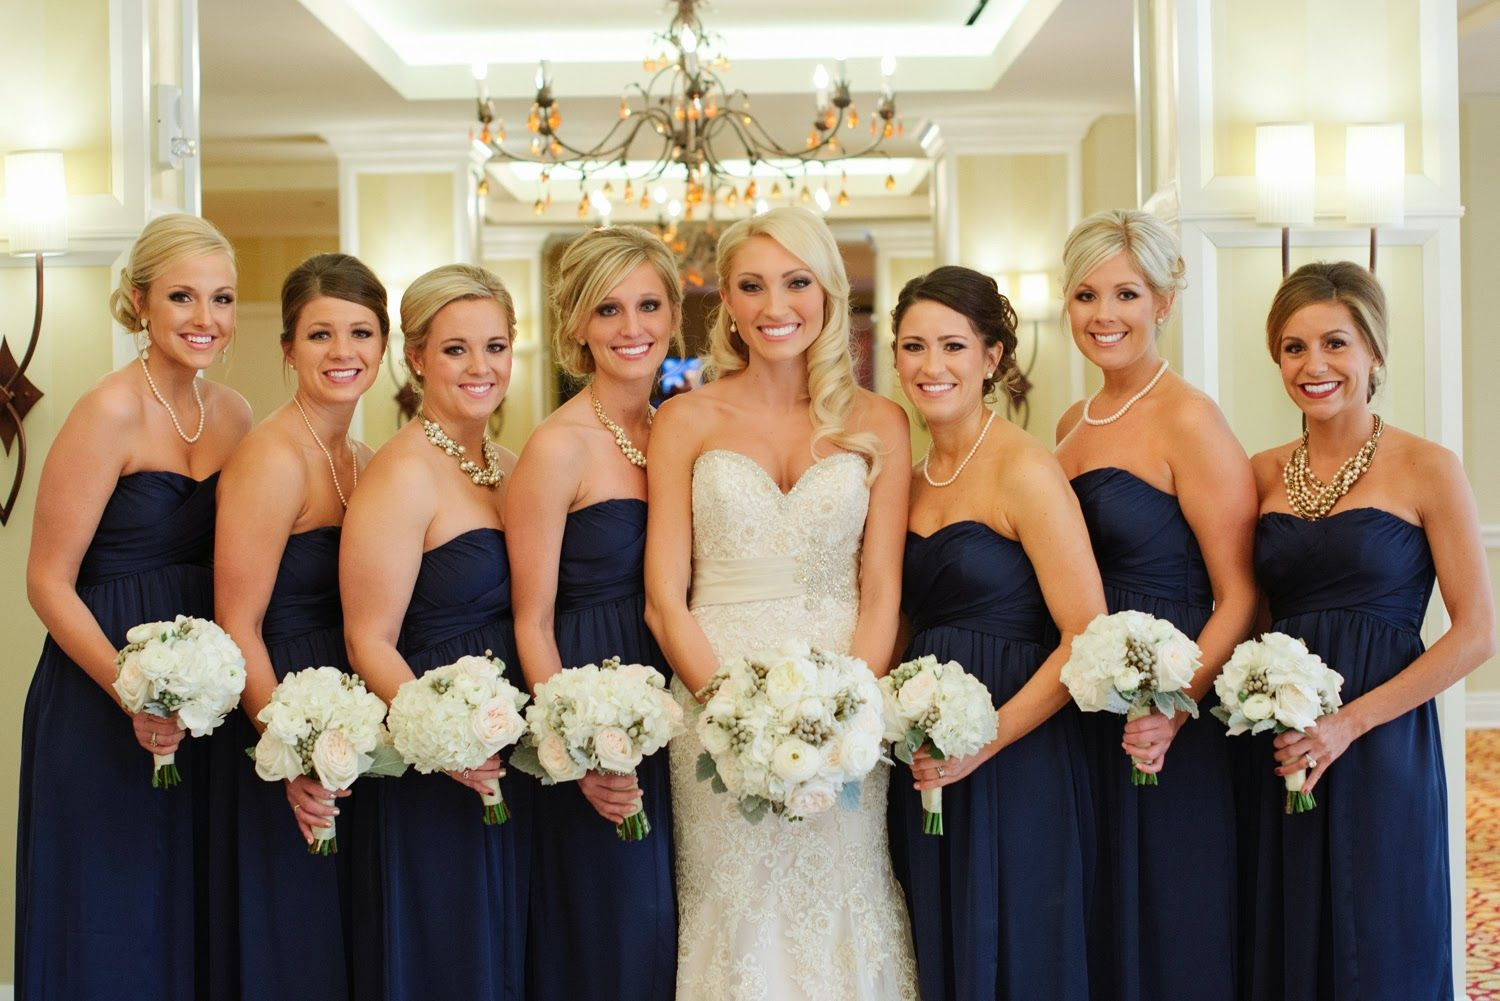 Sue lou events winter wedding elegance navy blue bridesmaid sue lou events winter wedding elegance navy blue bridesmaid dresses the skirvin ombrellifo Images